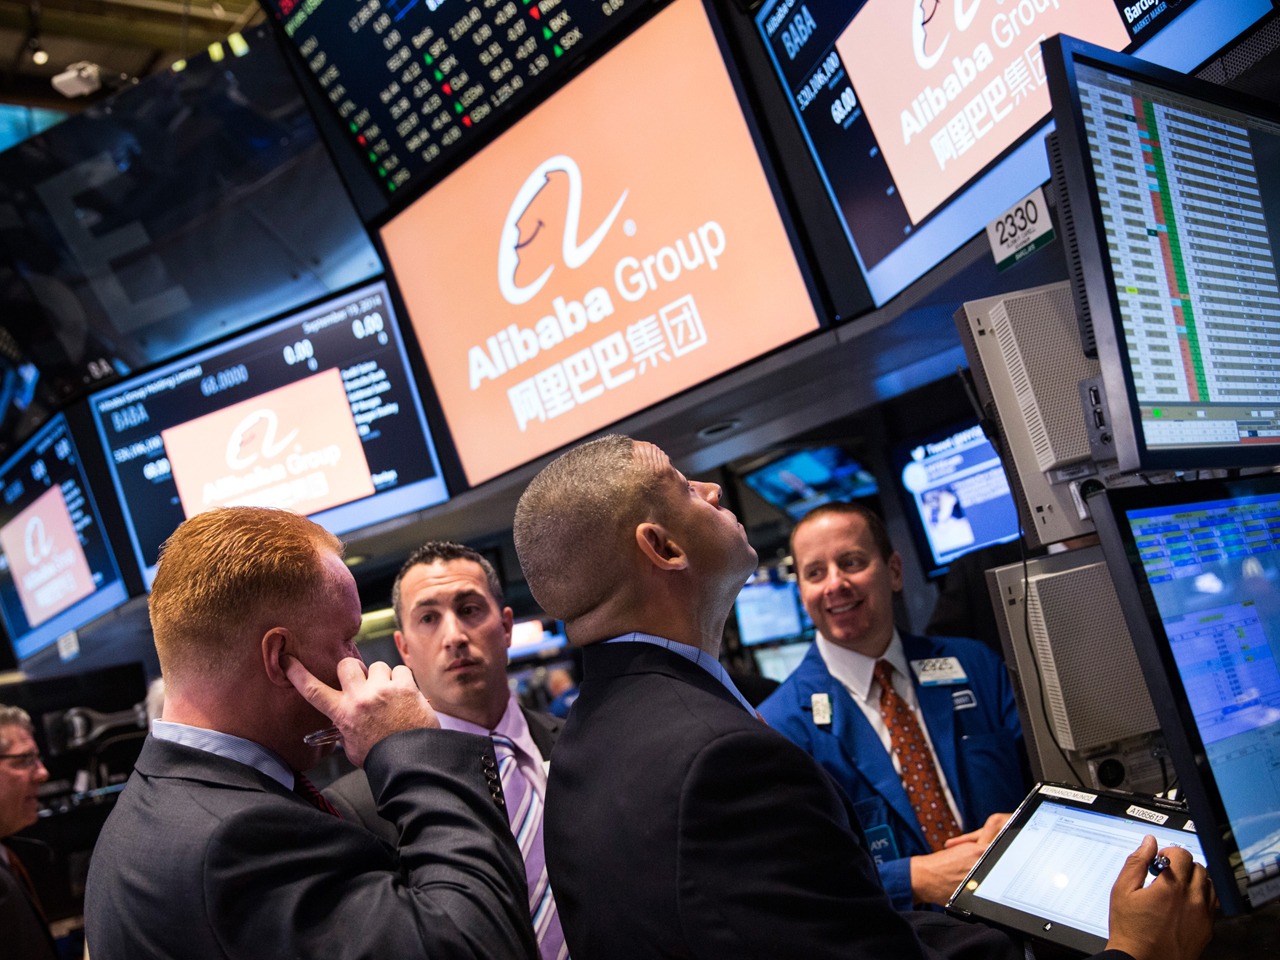 Alibaba ipo date in Melbourne